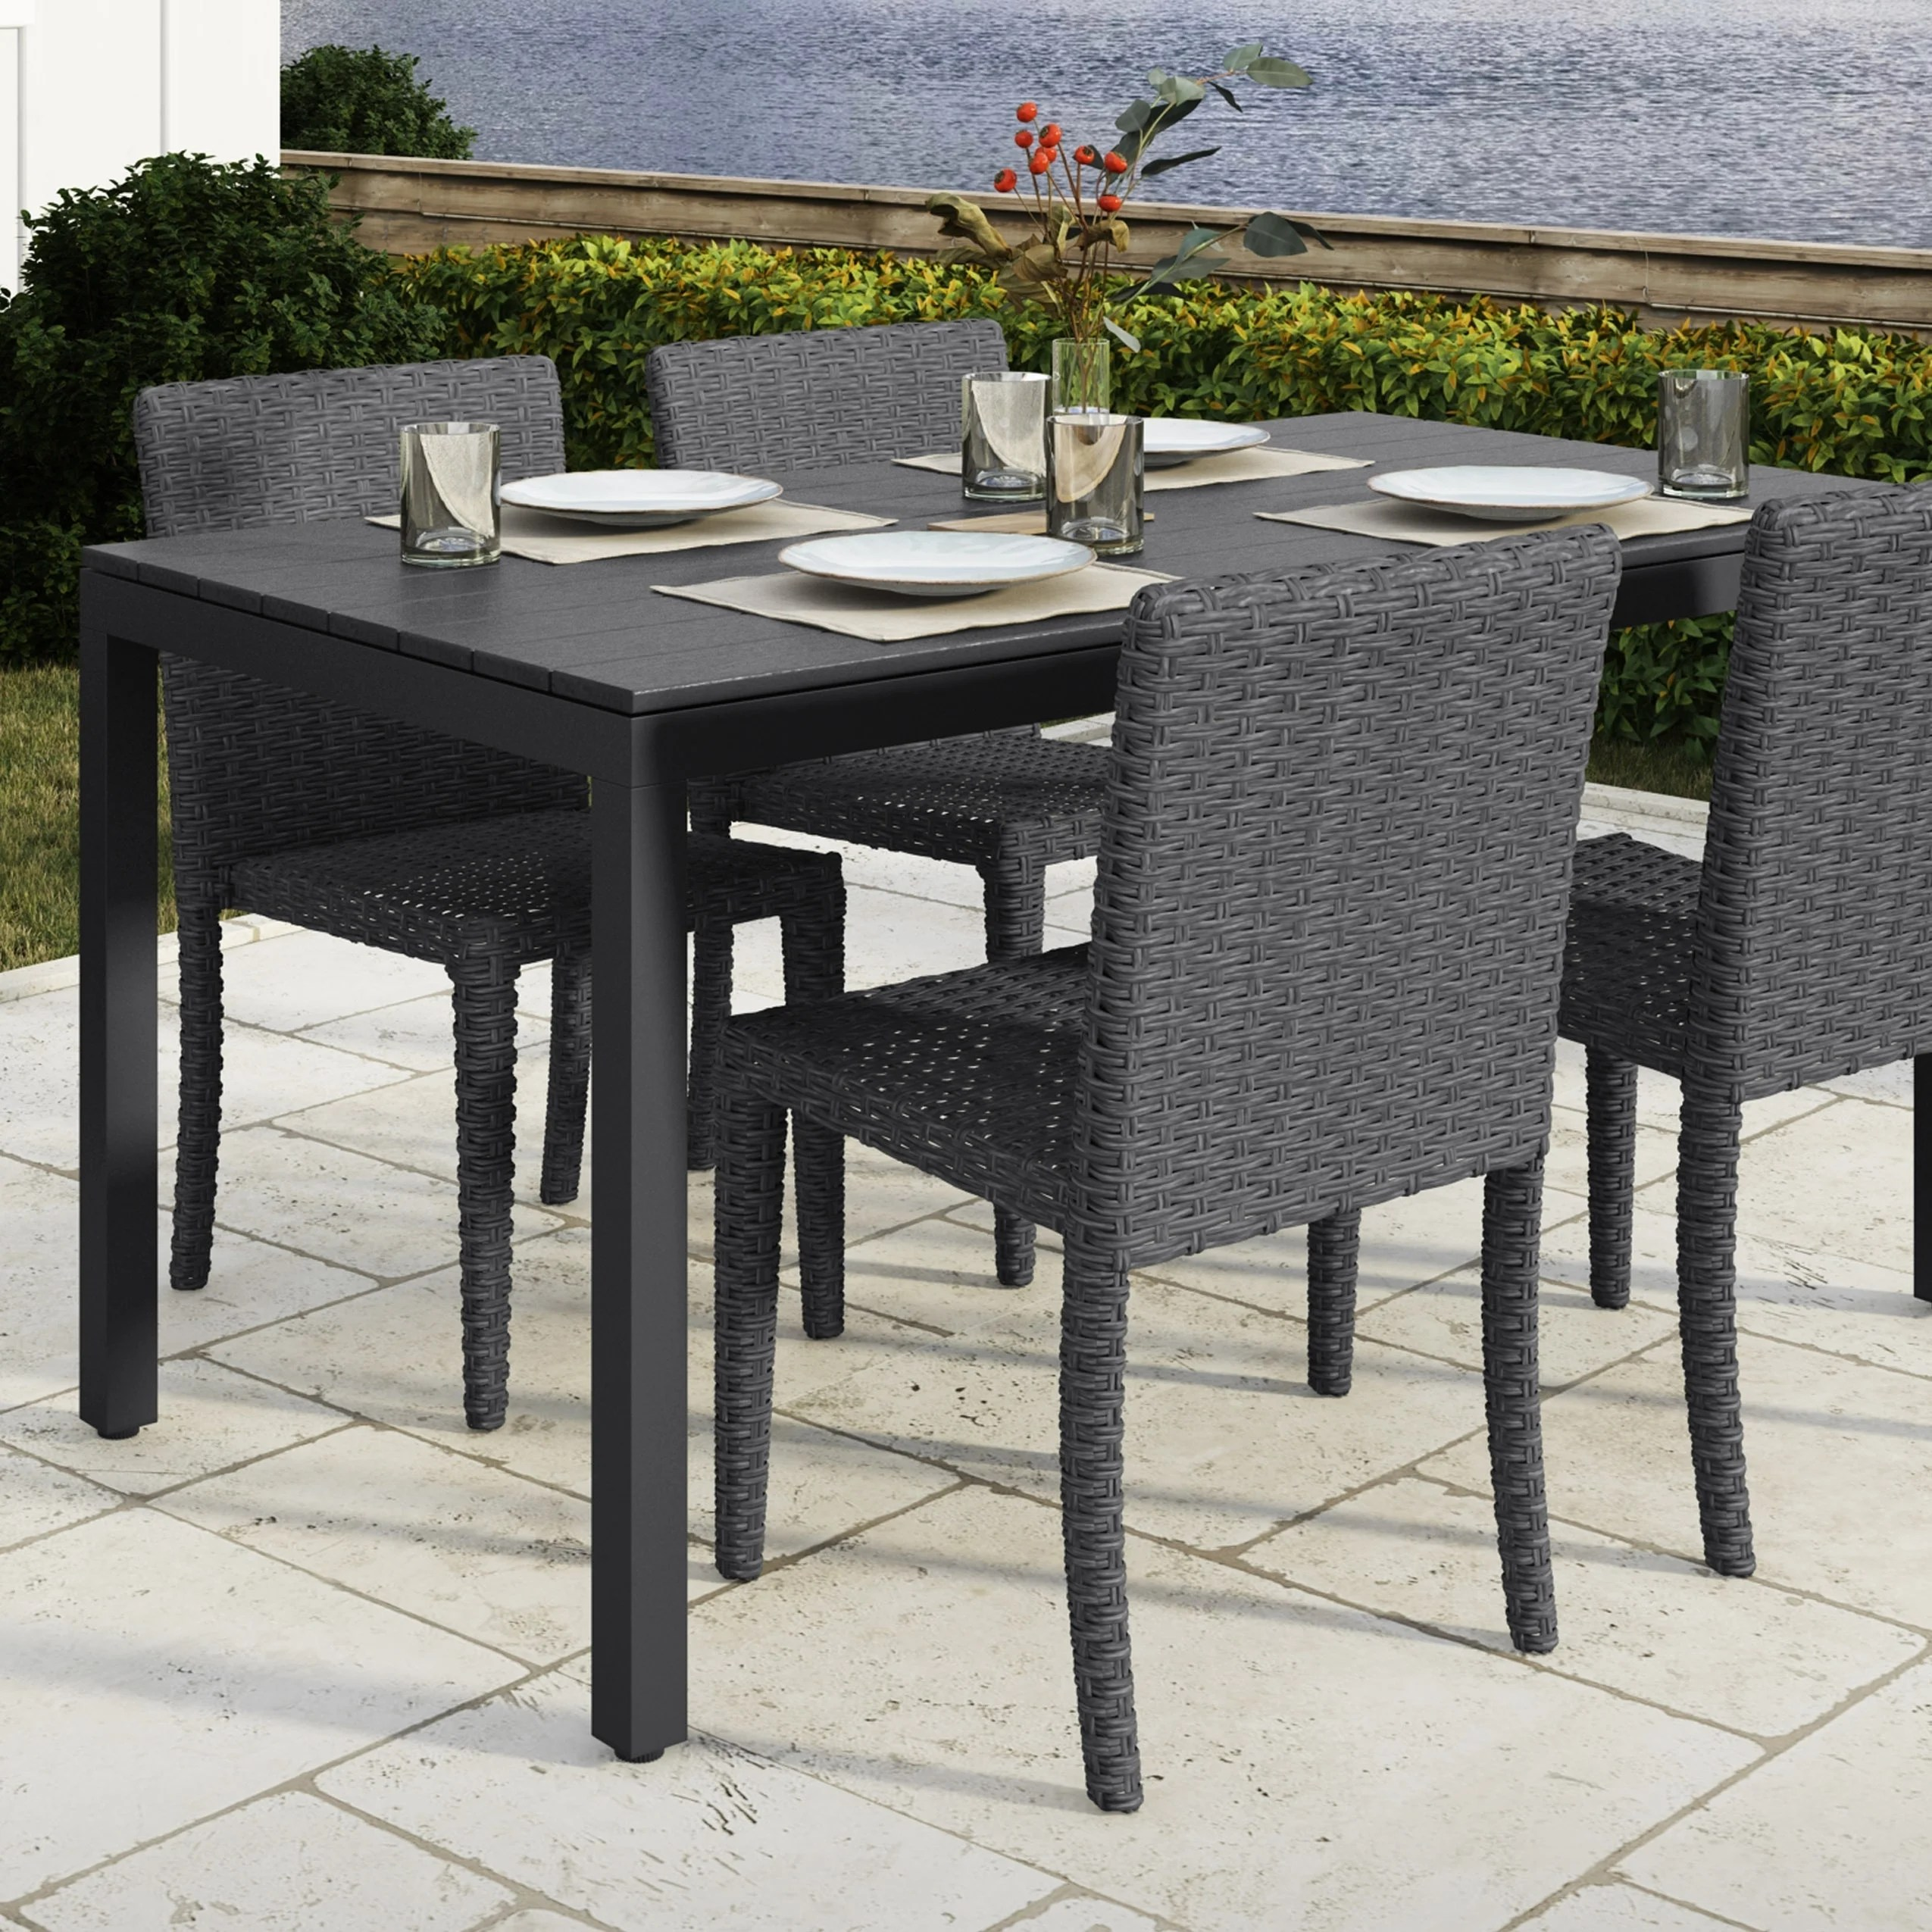 Dining Room Chairs Brisbane Brisbane Oblong Outdoor Dining Table